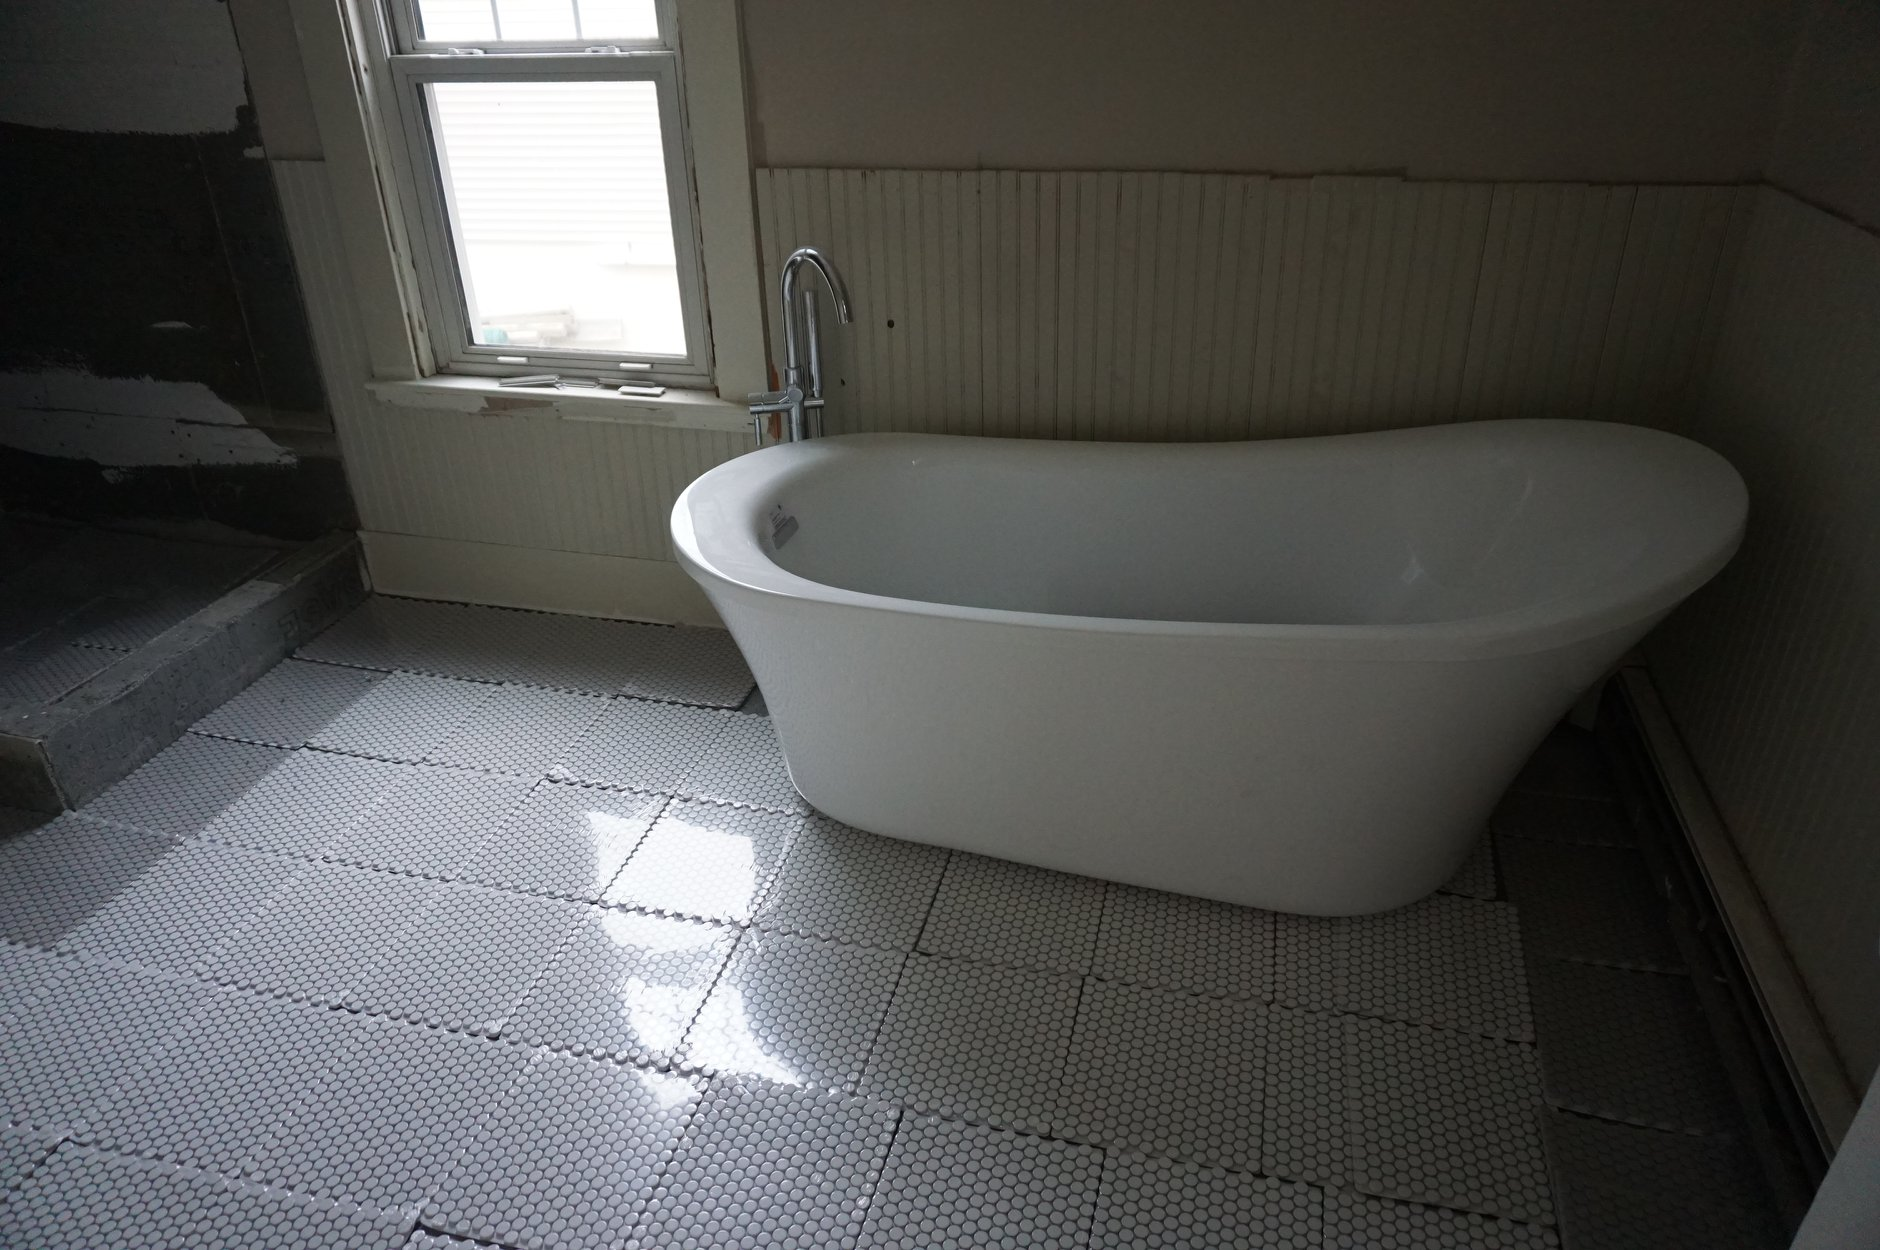 Soaking tub in 2nd floor bathroom